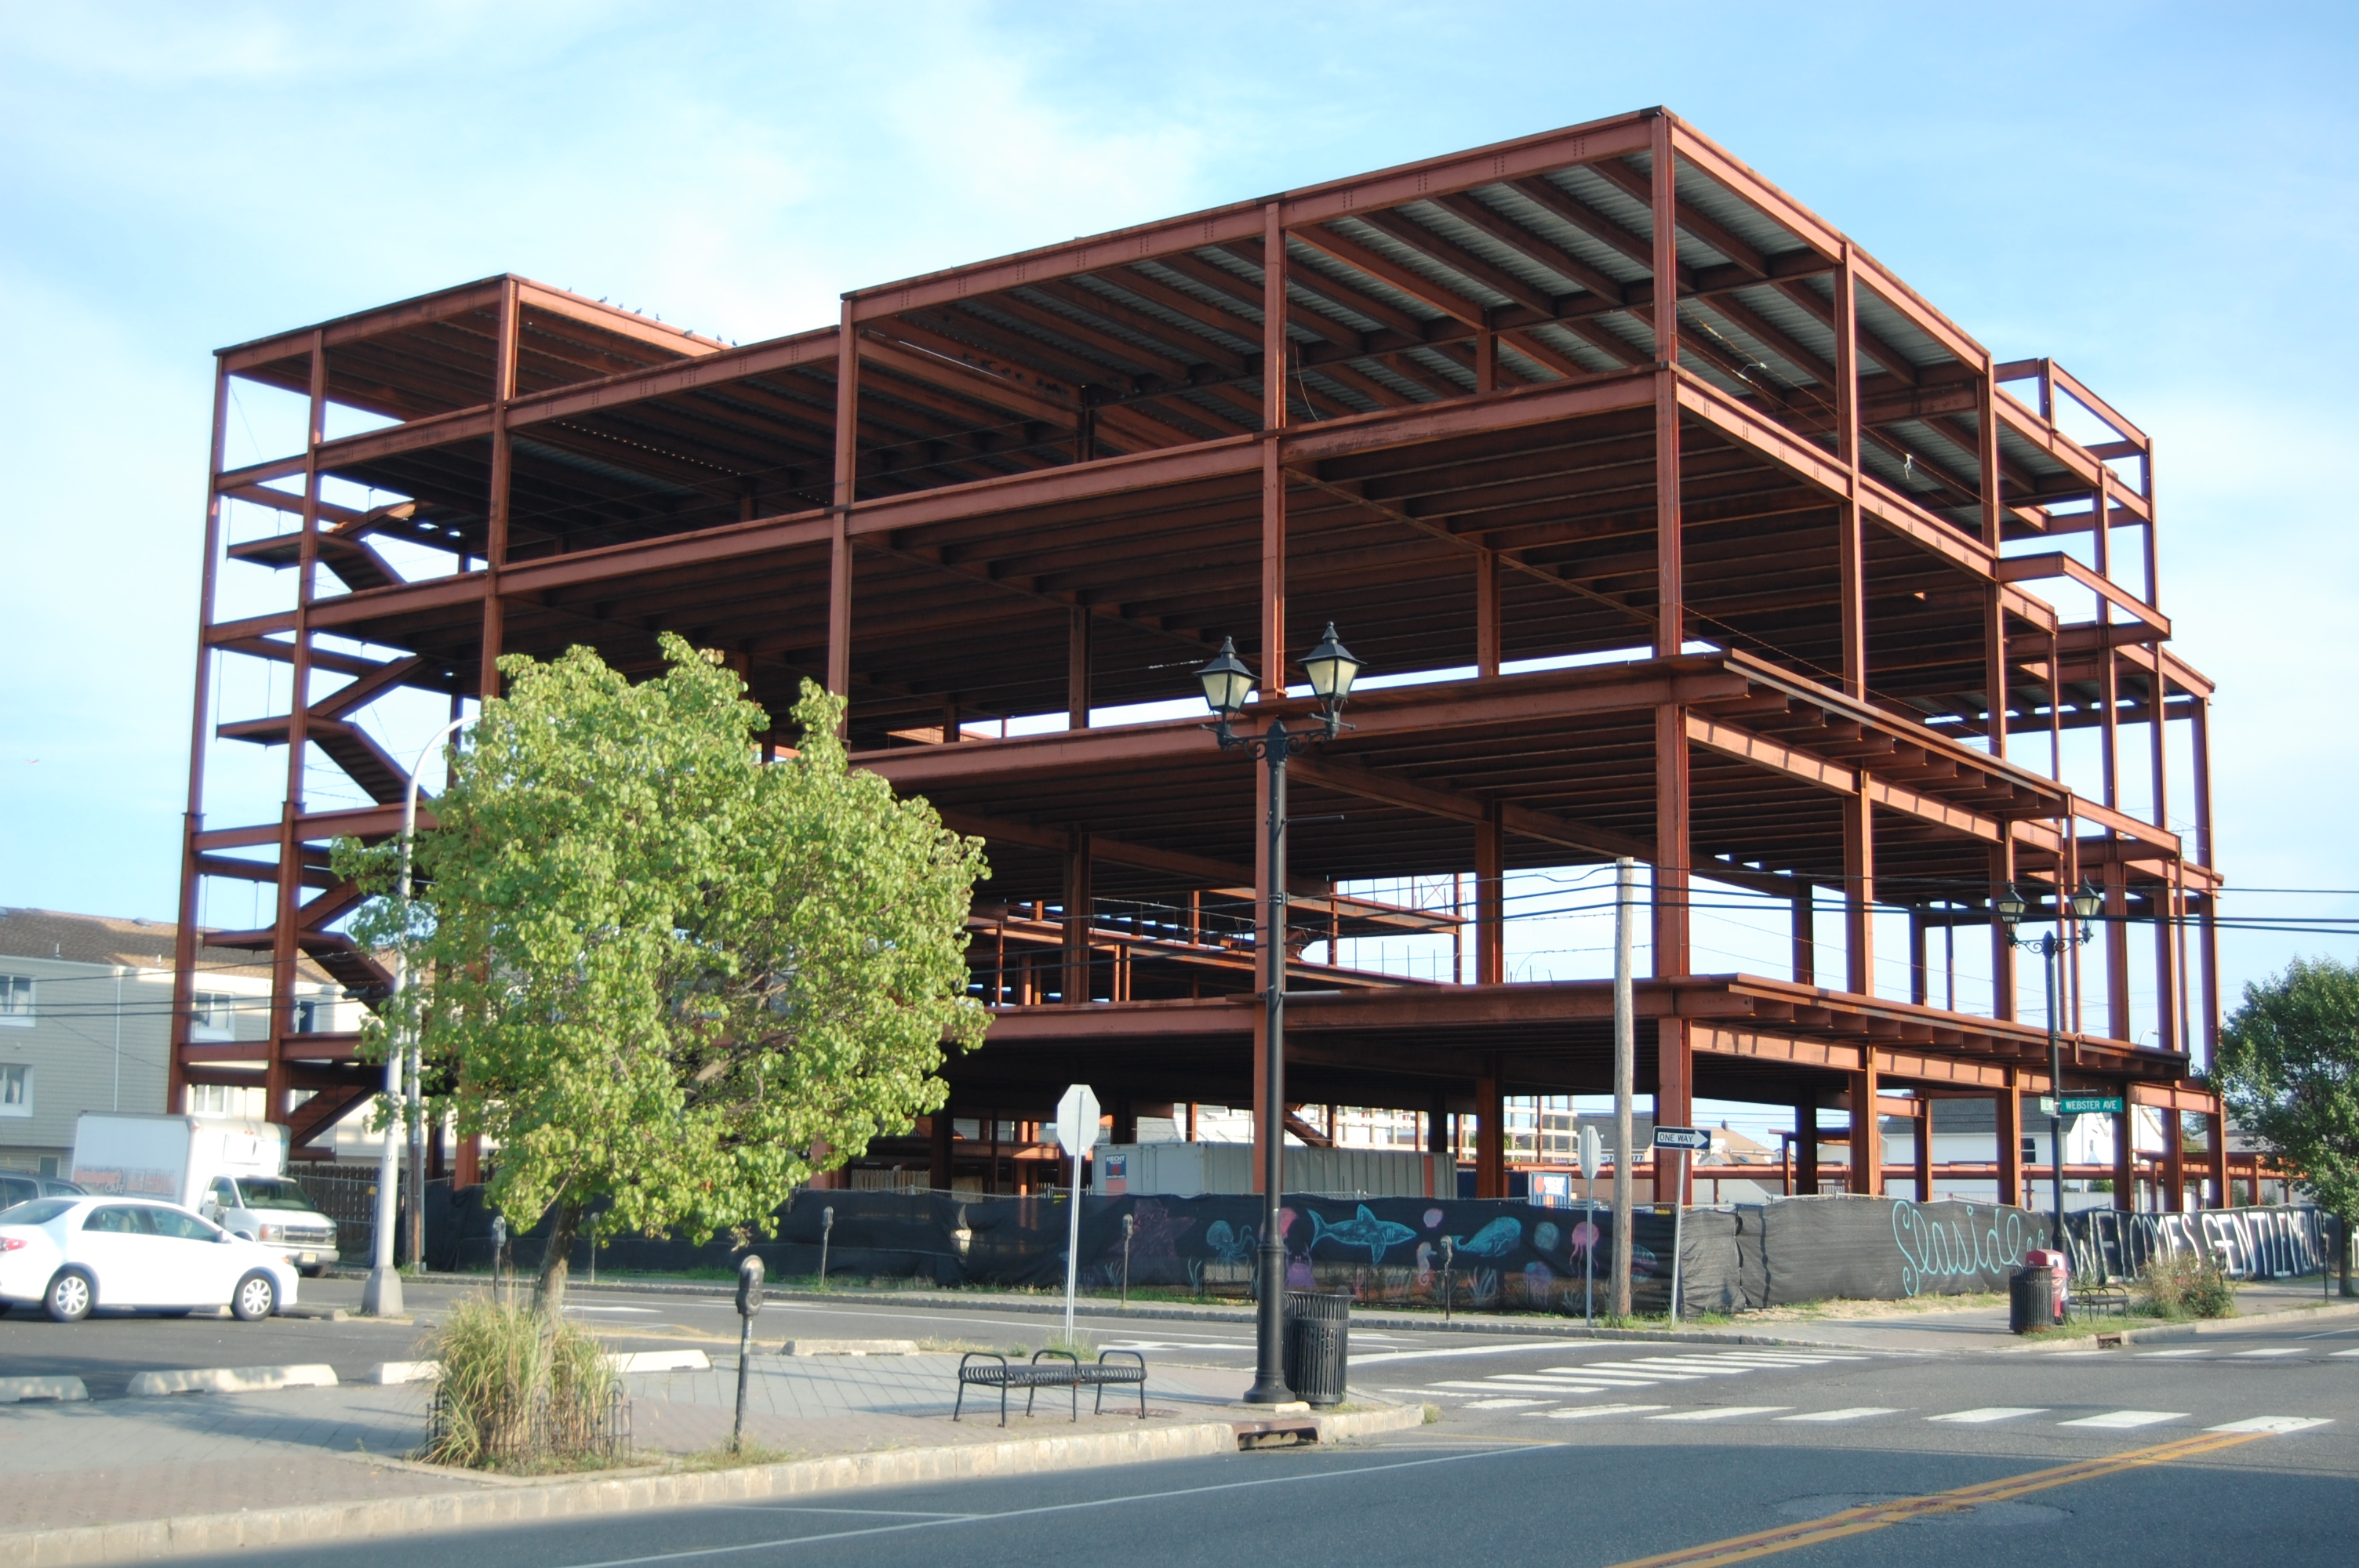 A planned nightlife and banquet hub in Seaside Heights, which has been sitting idle for years. (Photo: Daniel Nee)